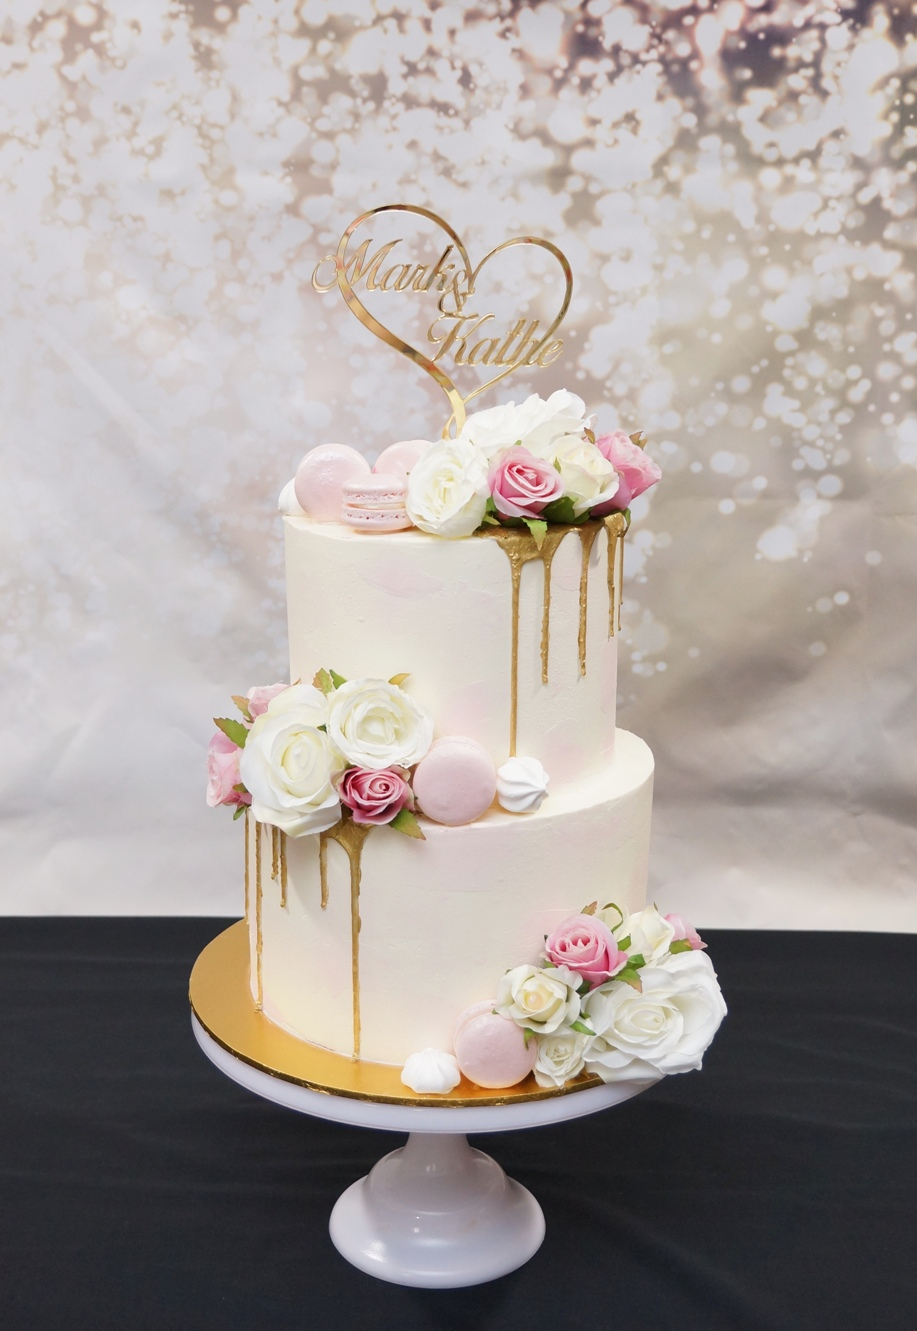 2 Tier White & Pink buttercream with gol